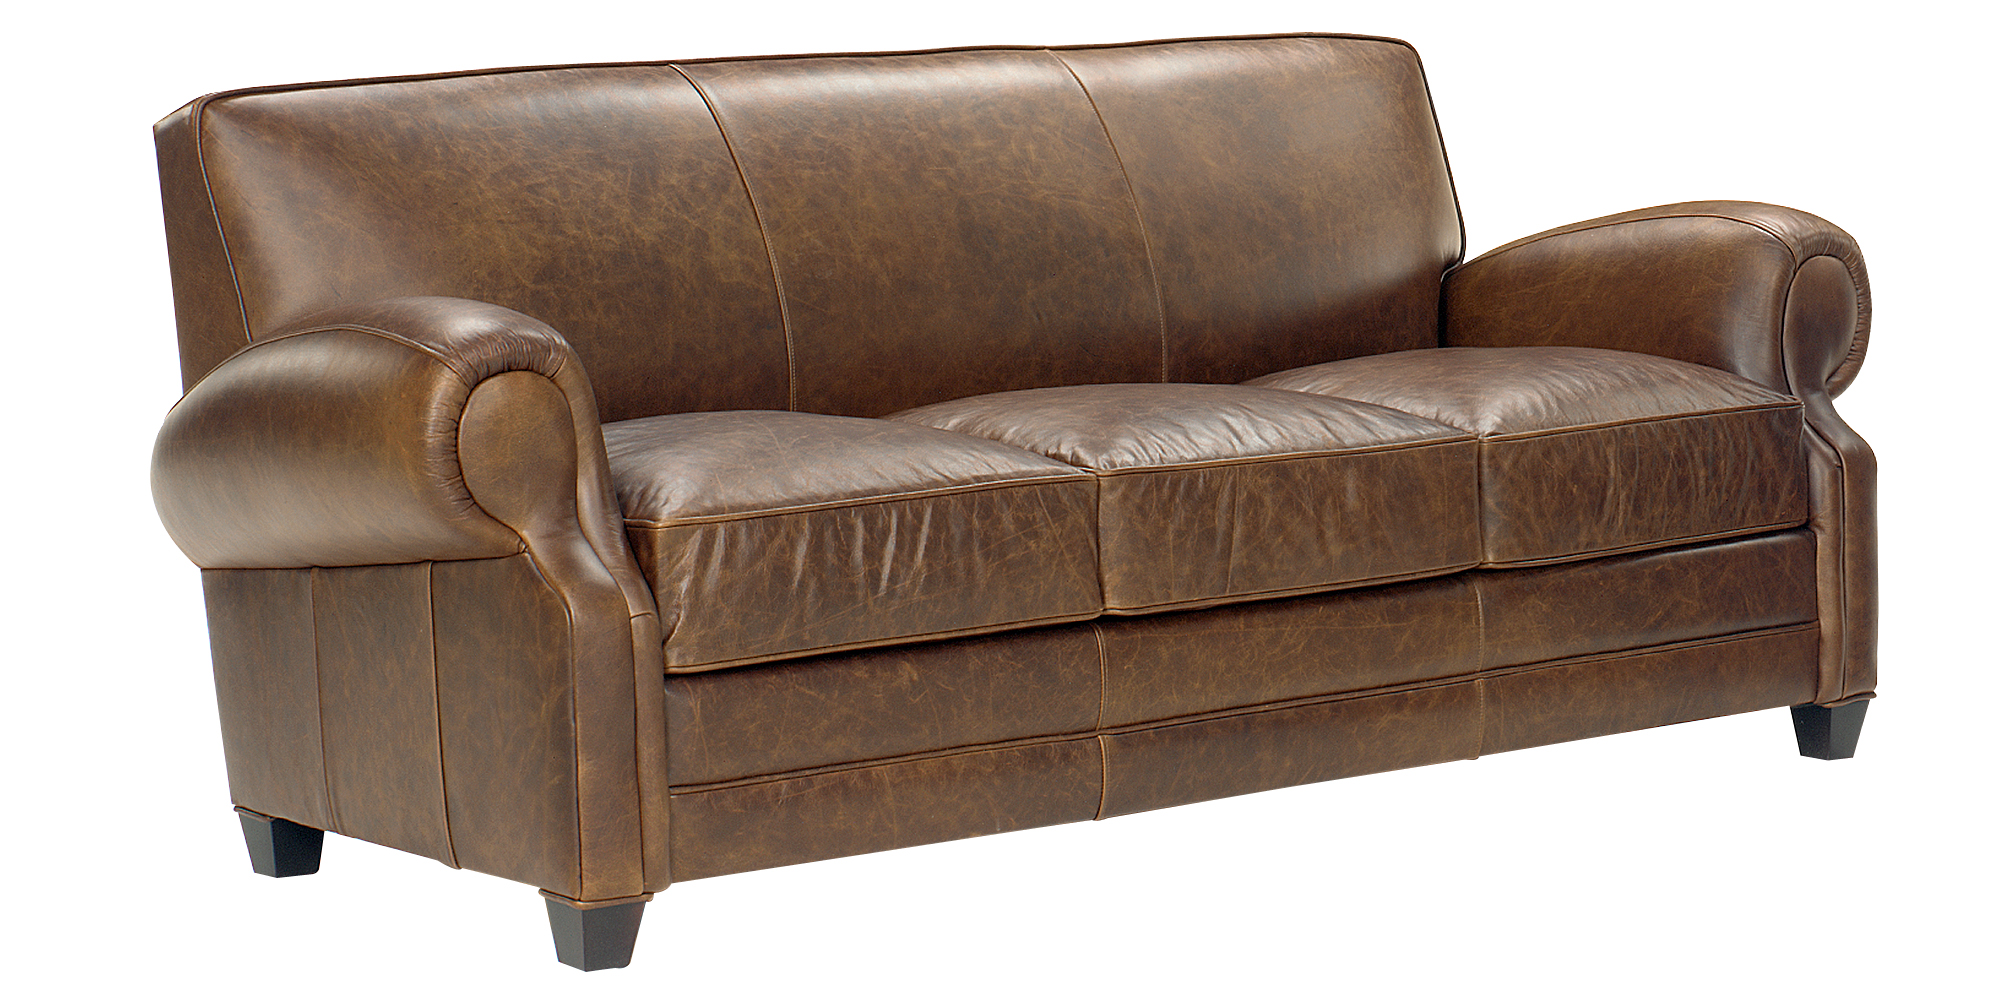 luxurious high end leather sofa collection club furniture. Black Bedroom Furniture Sets. Home Design Ideas